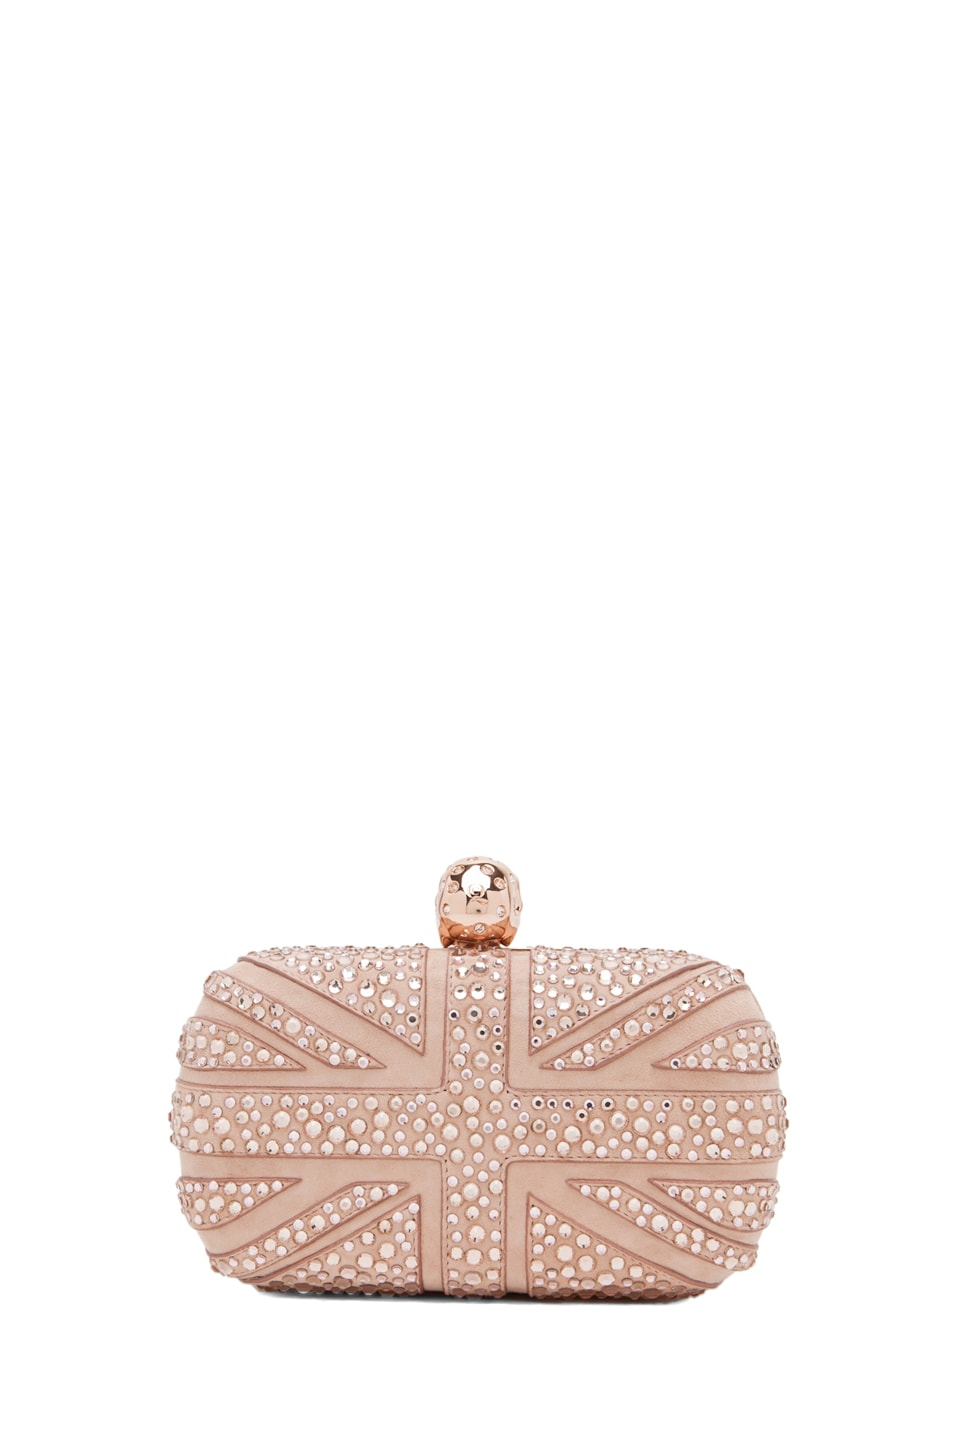 Cheap Price Beige Skull Clutch Alexander McQueen Outlet Locations DLDtH